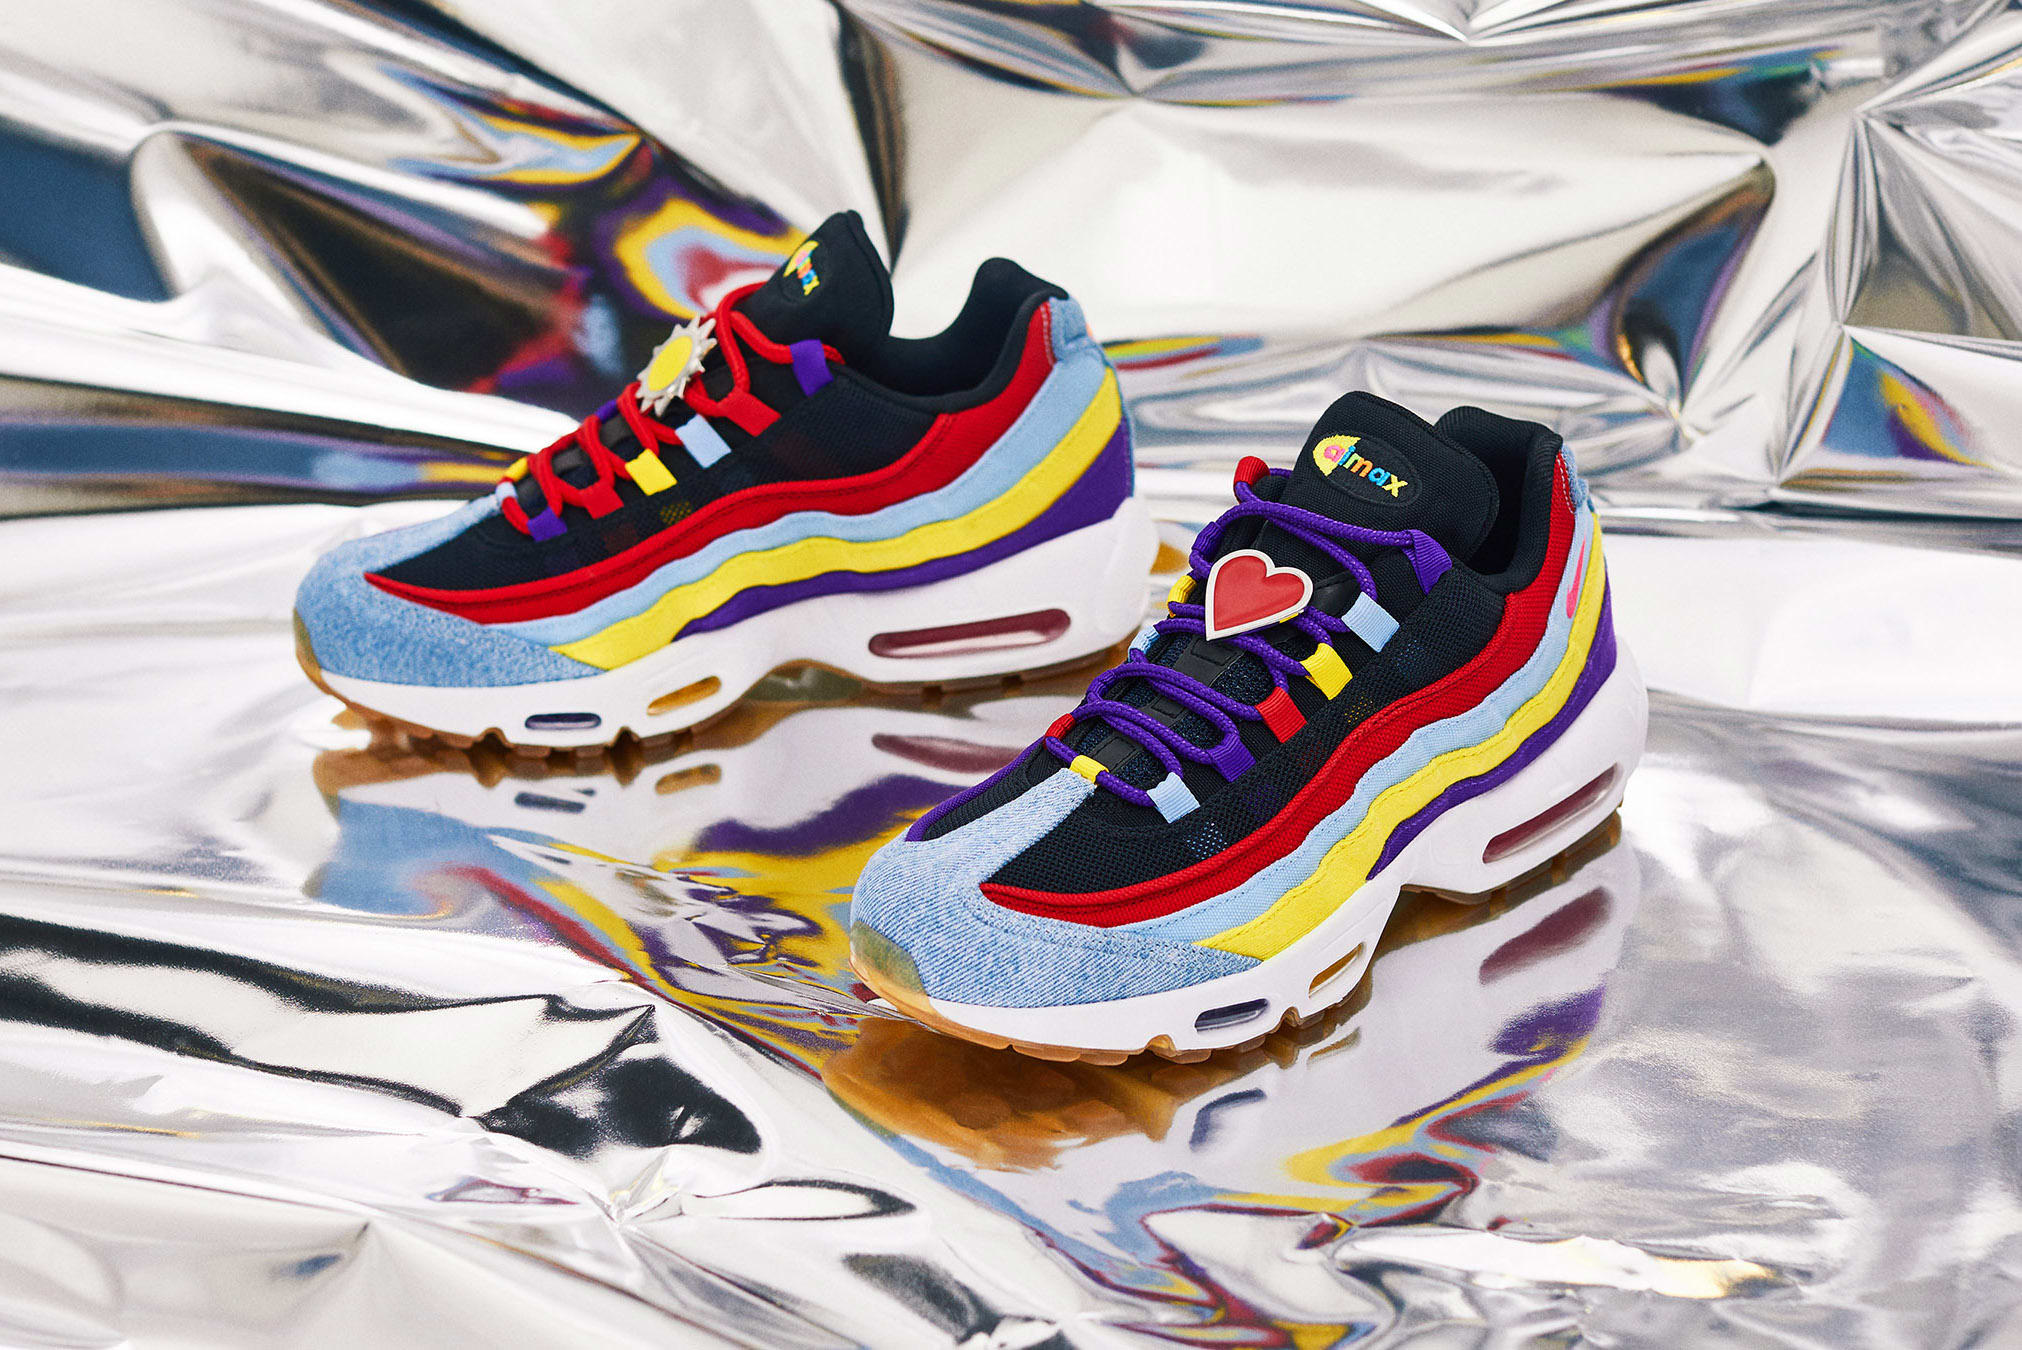 Nike Air Max 95 SP Multicolor CK5669 400 Release Date 3